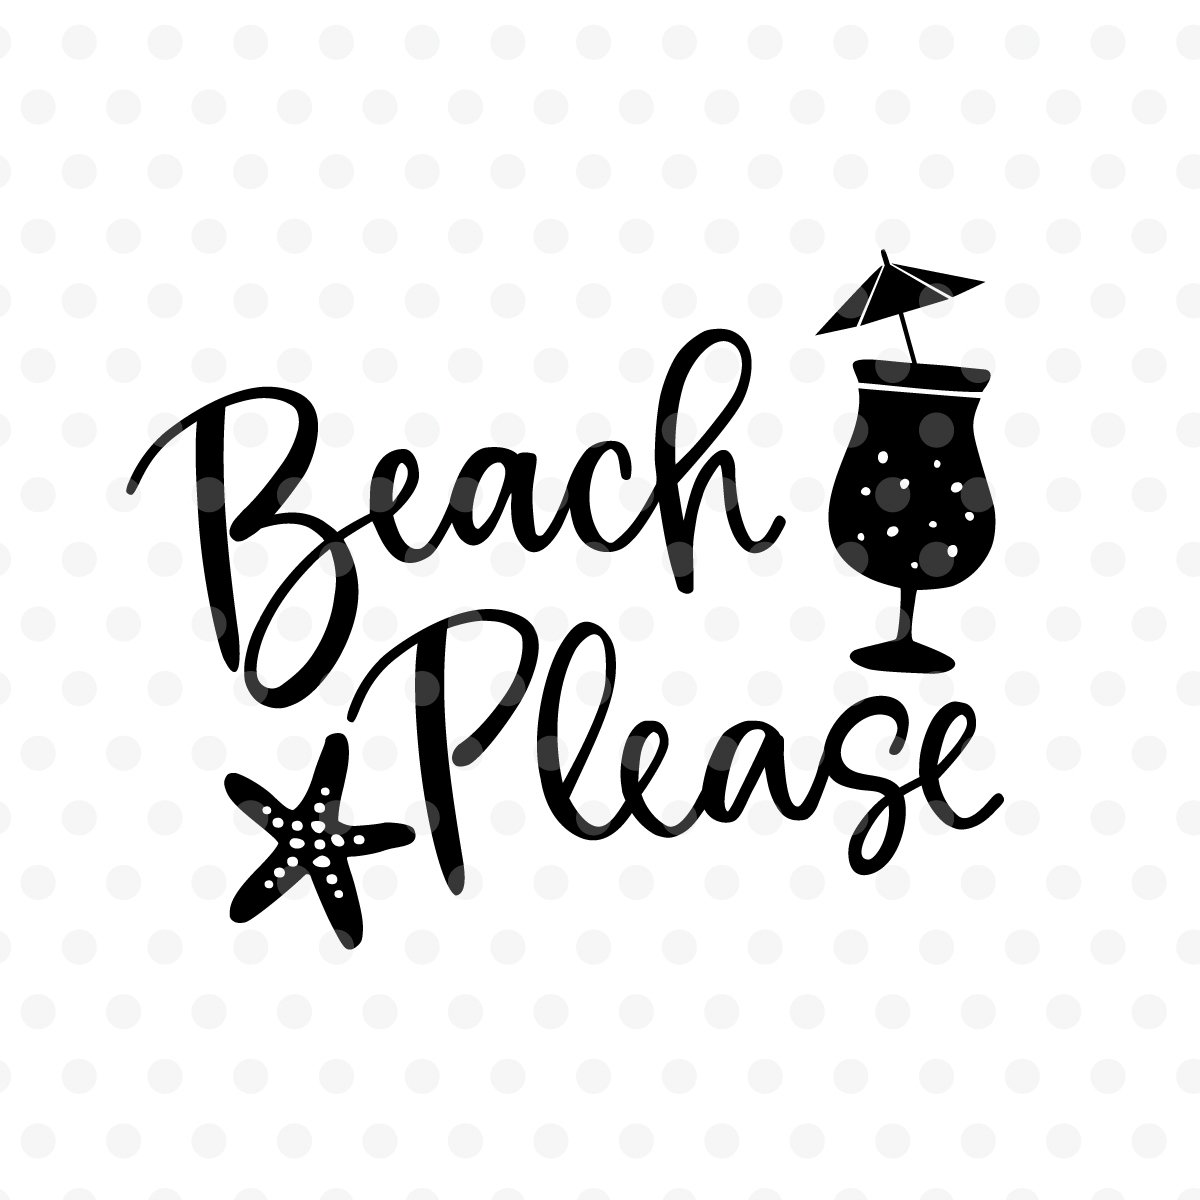 Beach Please Svg Eps Png Dxf 102576 Svgs Design Bundles